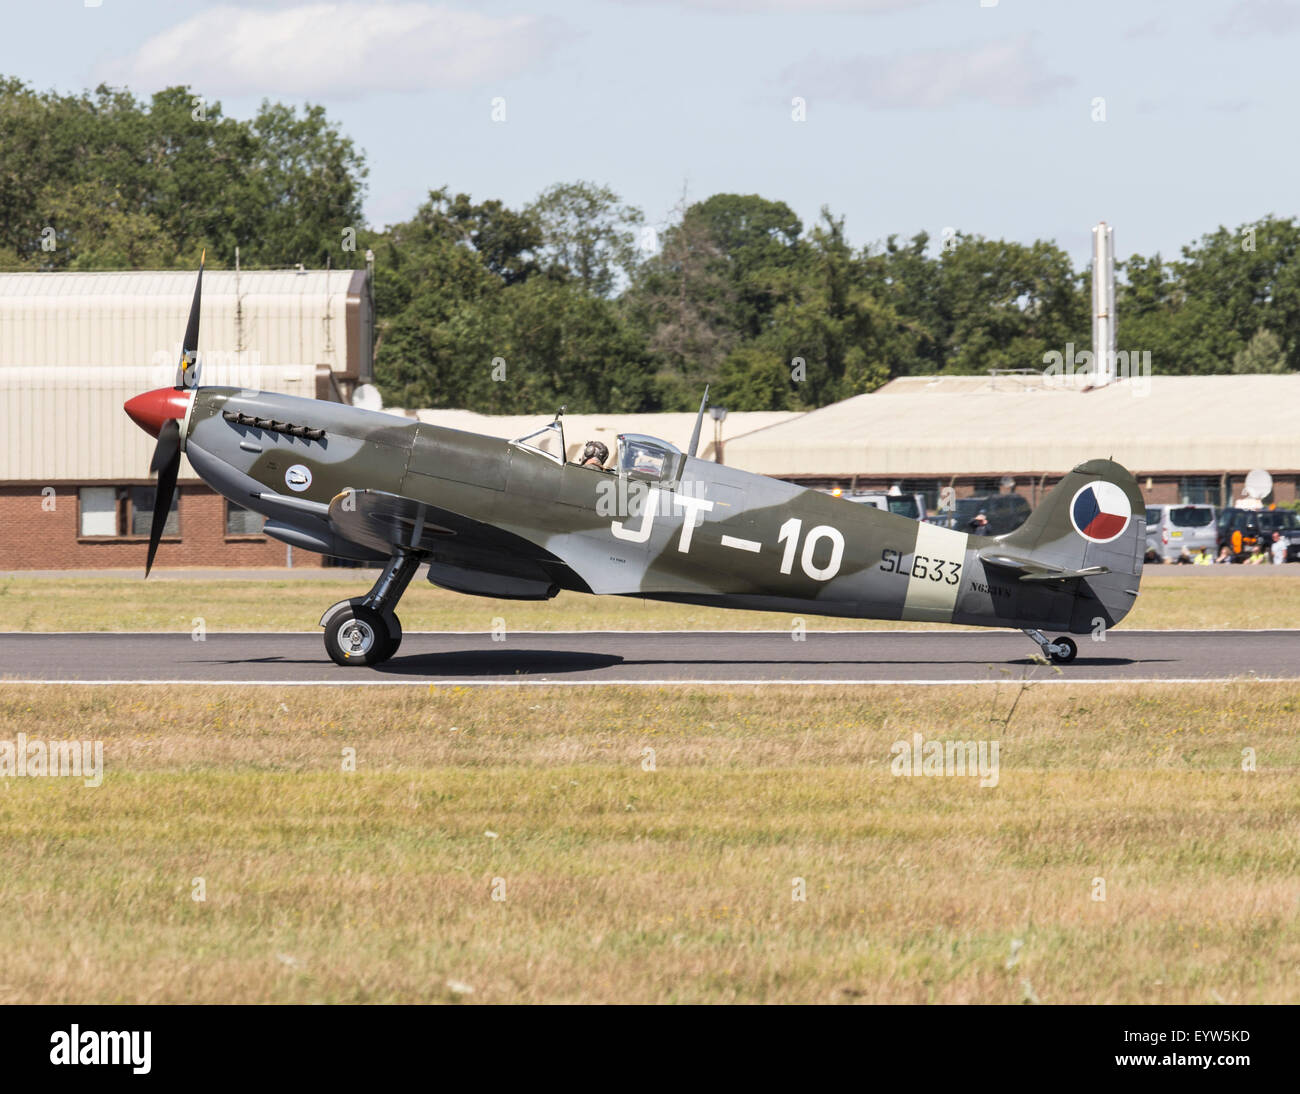 Supermarine Spitfire Mk IX at the 2015 Royal International Air Tattoo Stock Photo